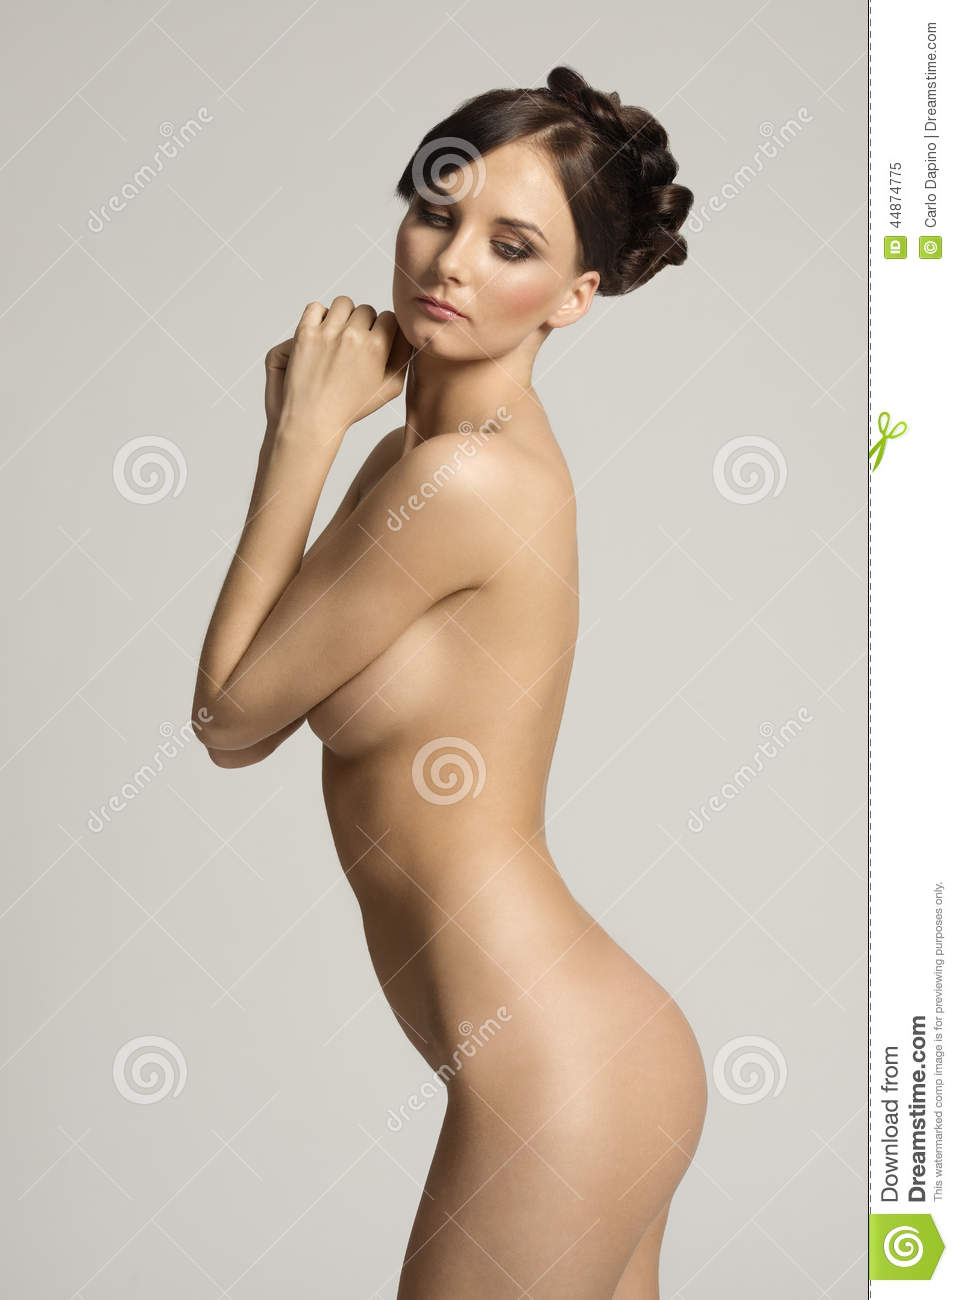 natural girls with nude bodies jpg 1152x768